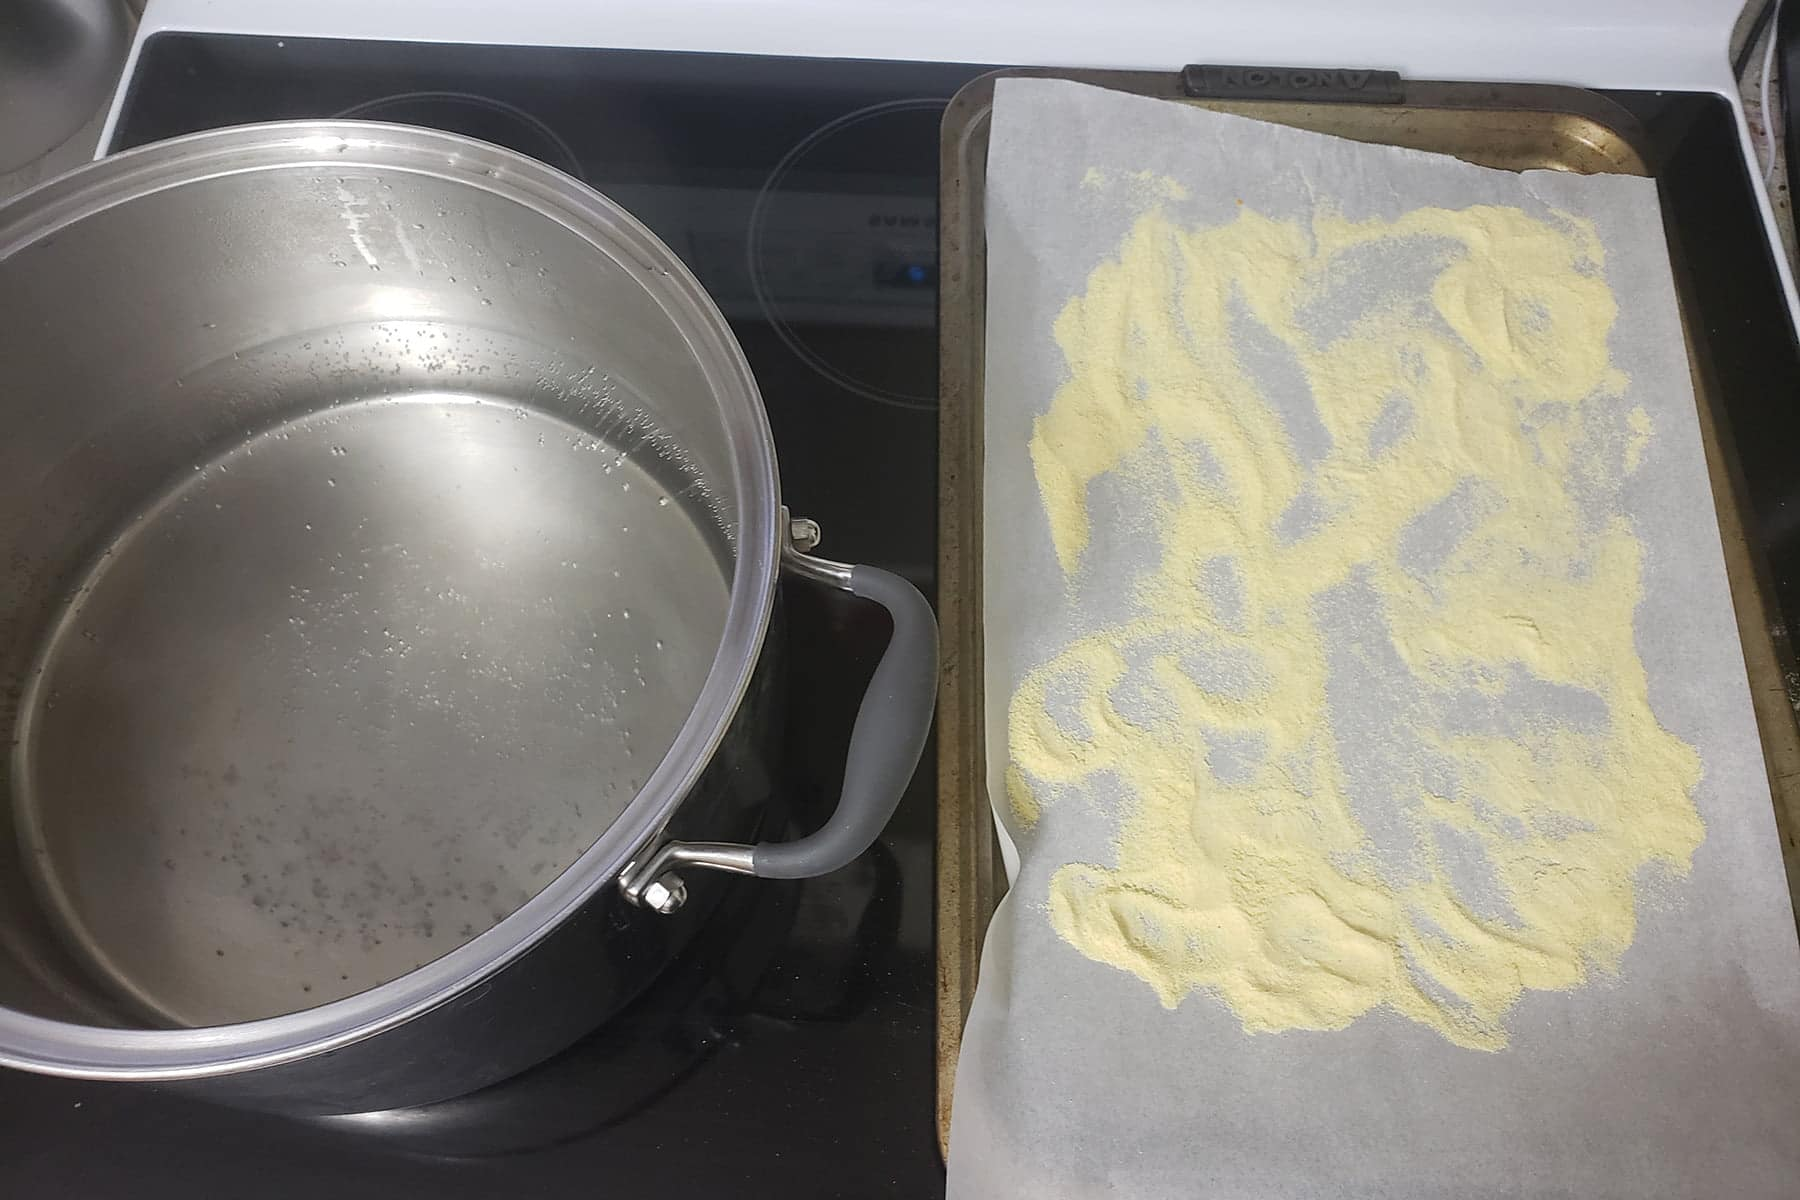 A large pot of water next to a parchment lined baking sheet. The parchment has cornmeal scattered over it.